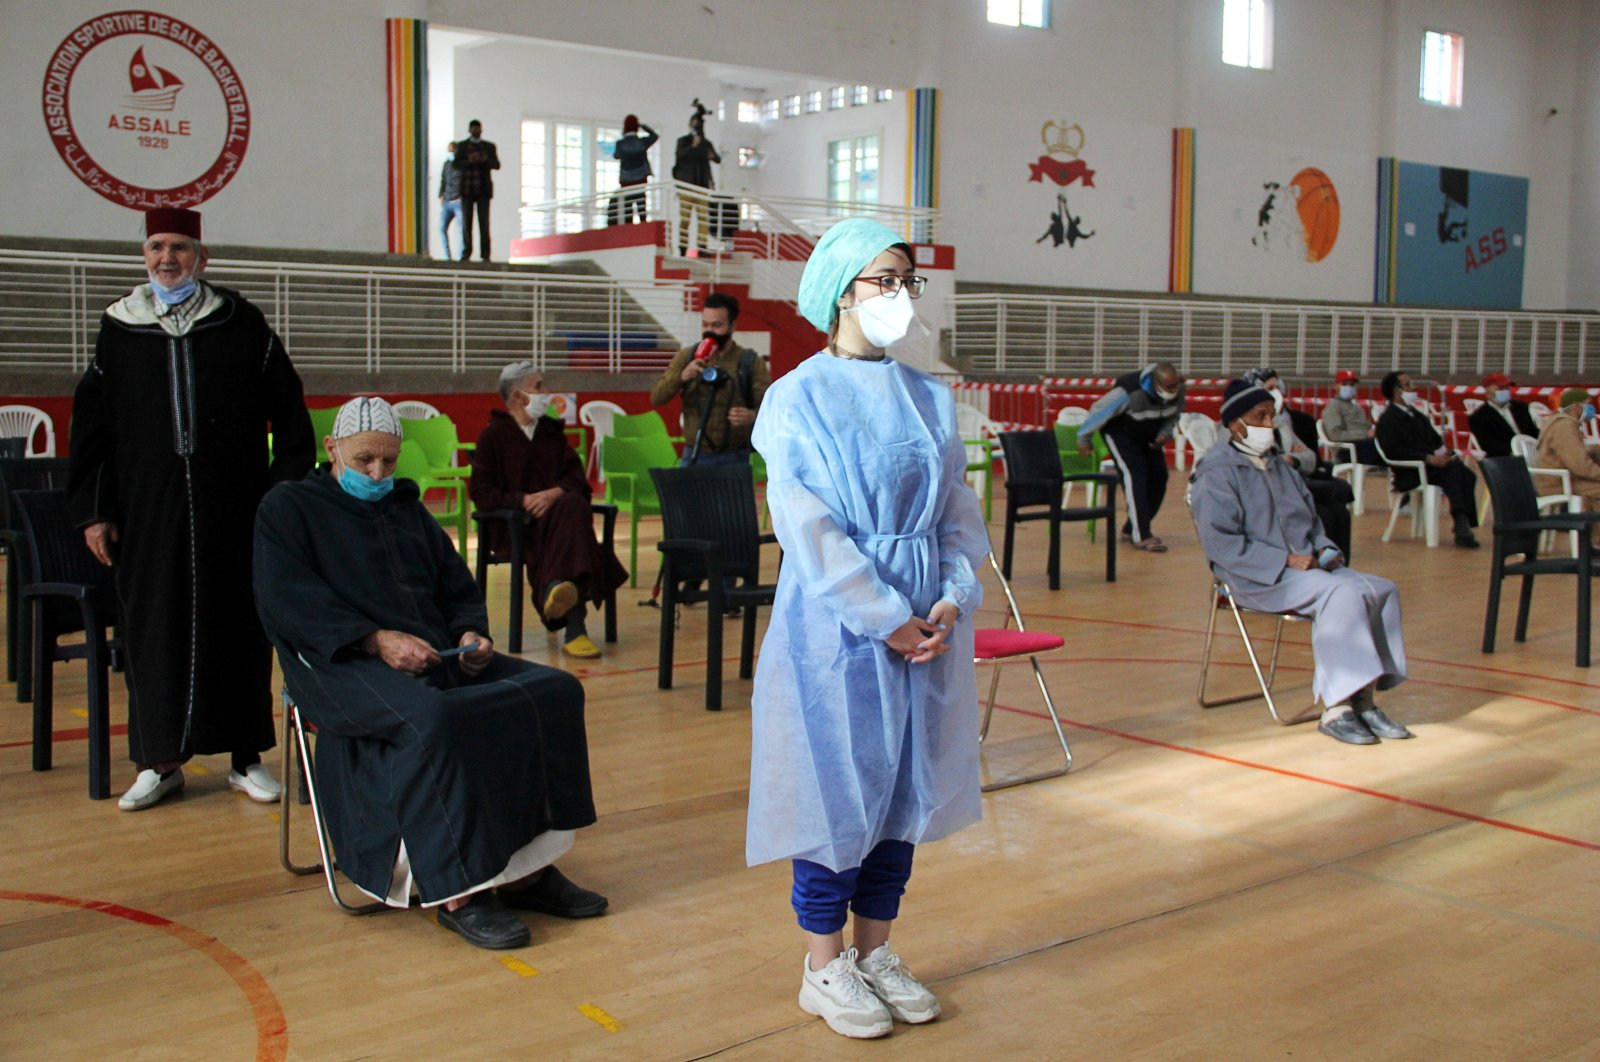 People wait to receive the COVID-19 vaccine, during a national coronavirus vaccination campaign, in Sale, Morocco, Jan. 29, 2021. (REUTERS)